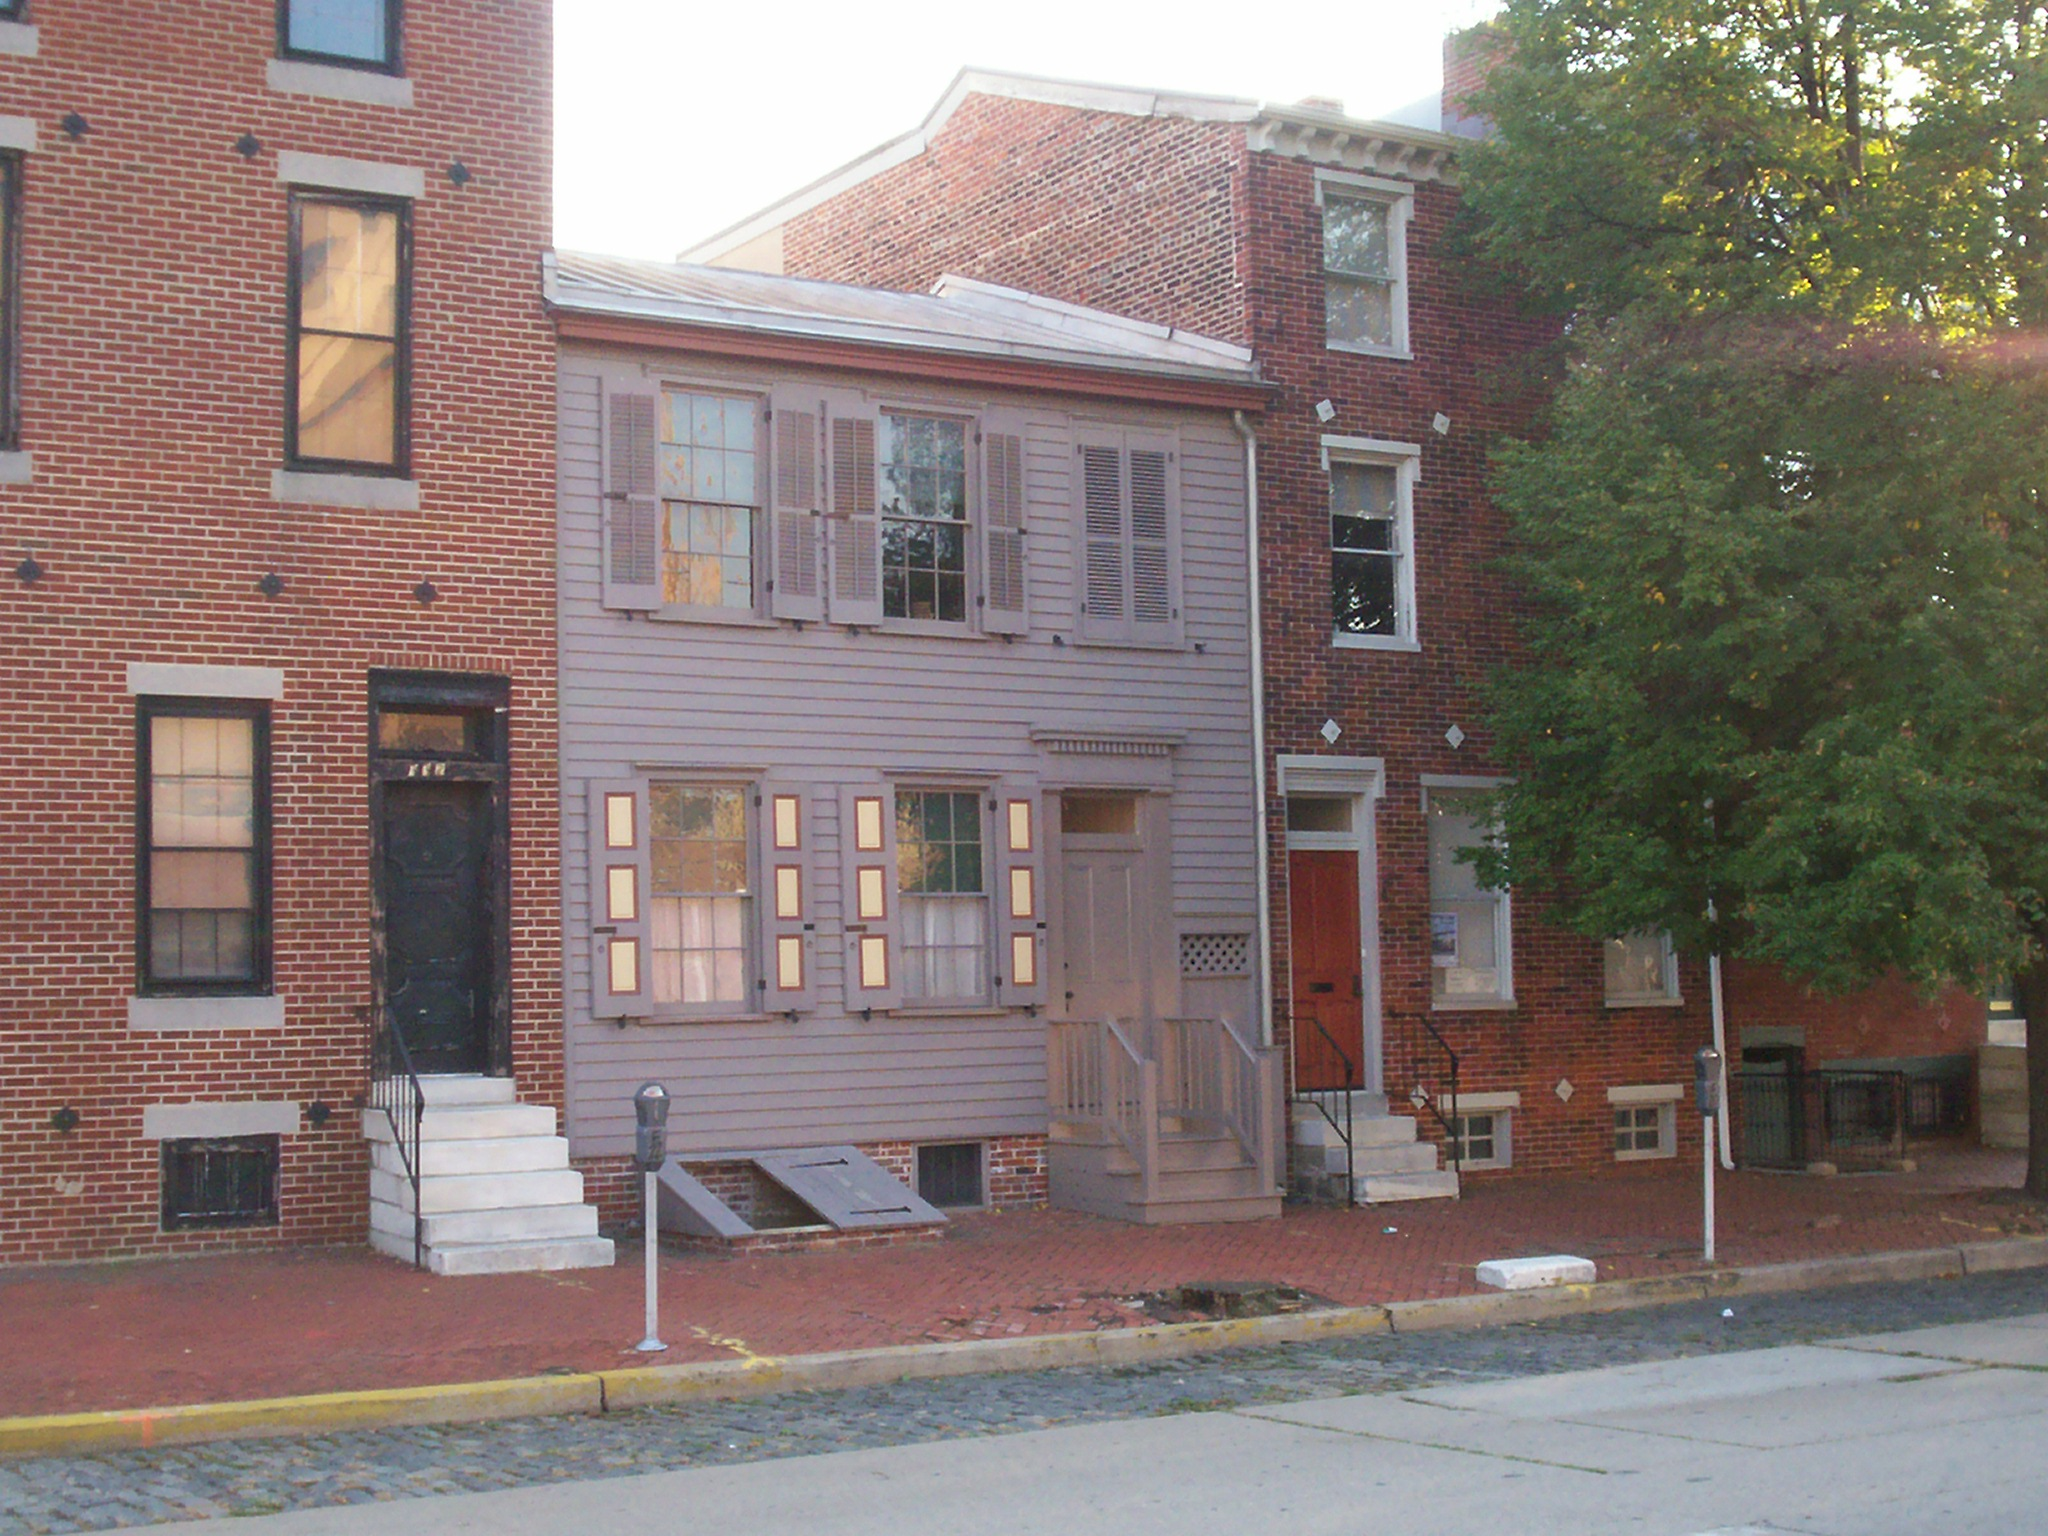 The Walt Whitman House was home to the great American poet for the last eight years of his life, from 1884-1892. Image obtained from Wikimedia.